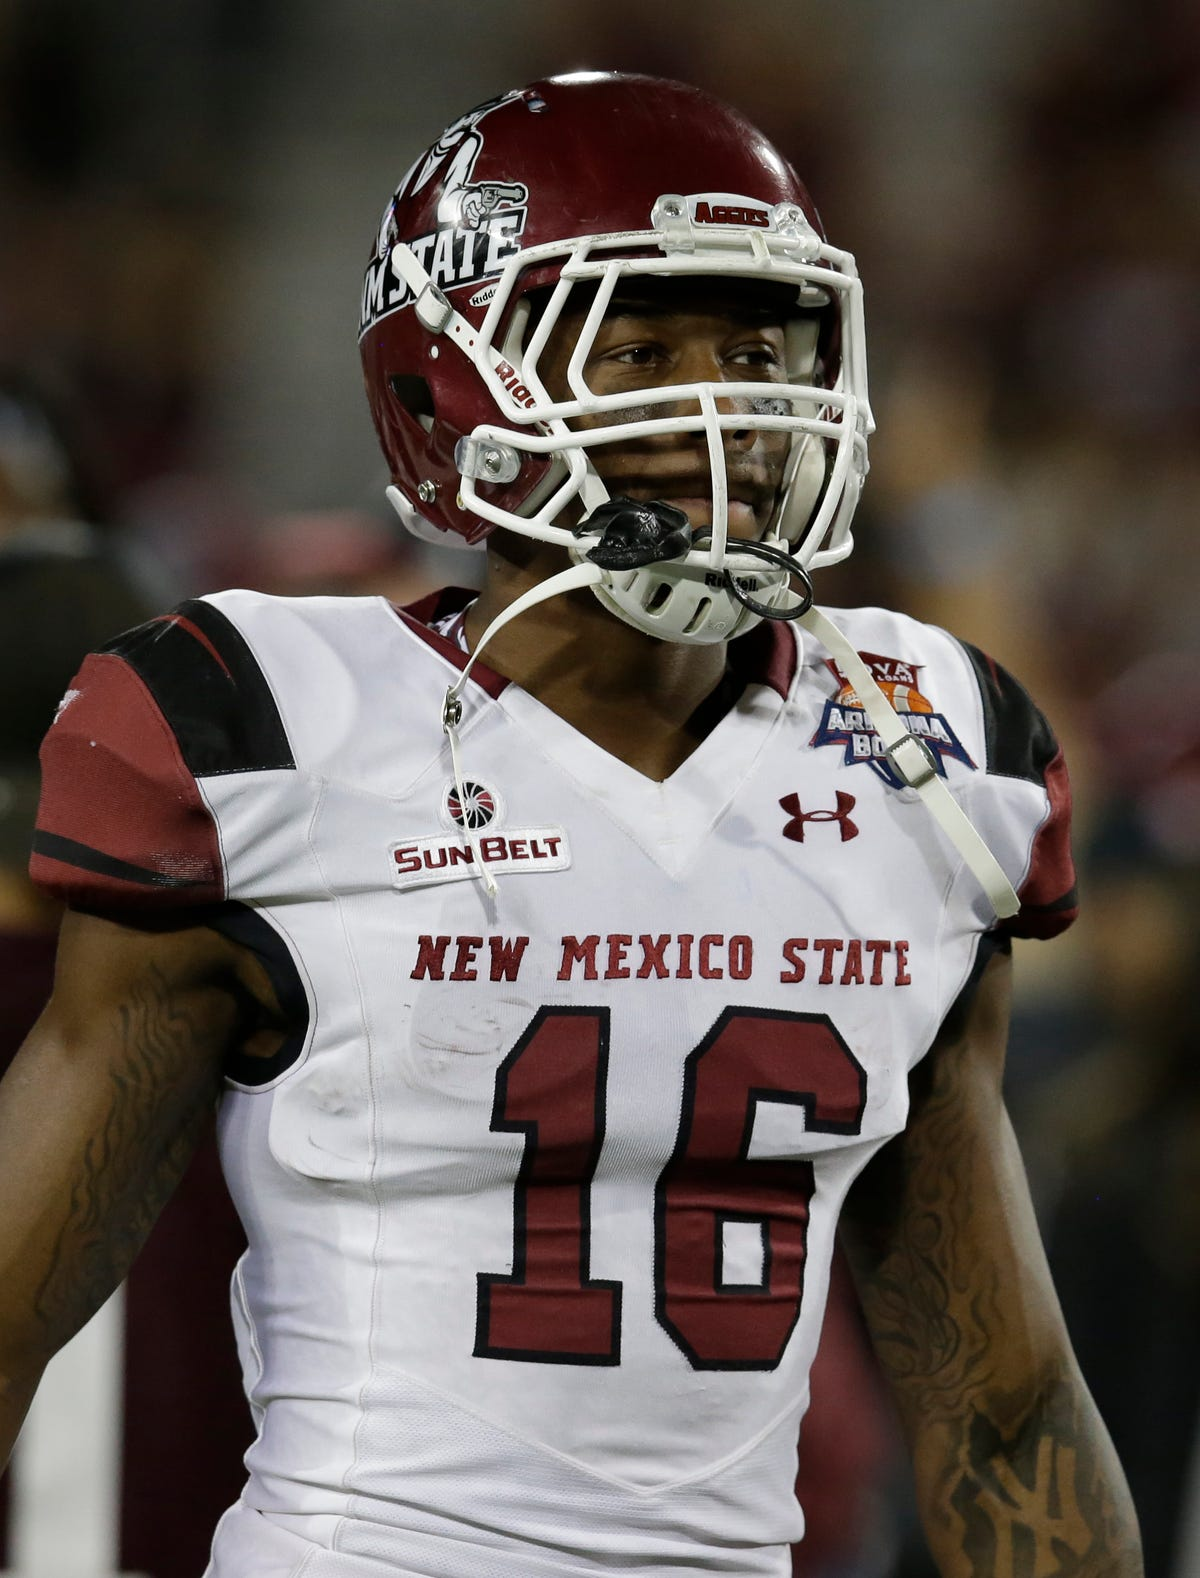 best website efbe3 3a413 New Mexico State's Jaleel Scott selected by Baltimore Ravens